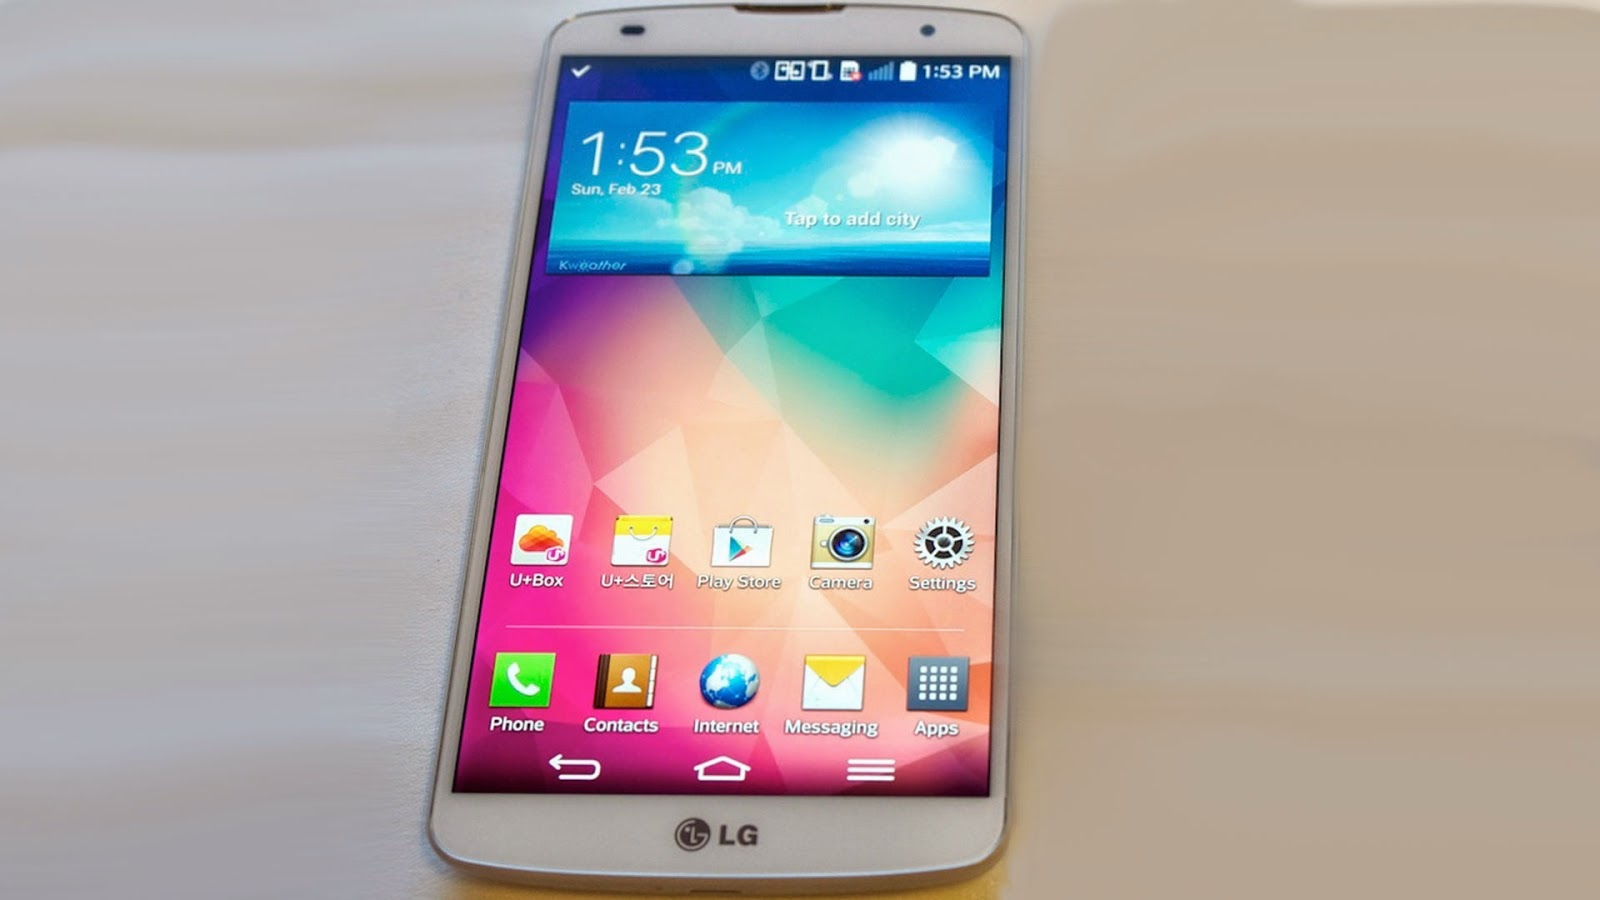 How To Root LG G Pro 2